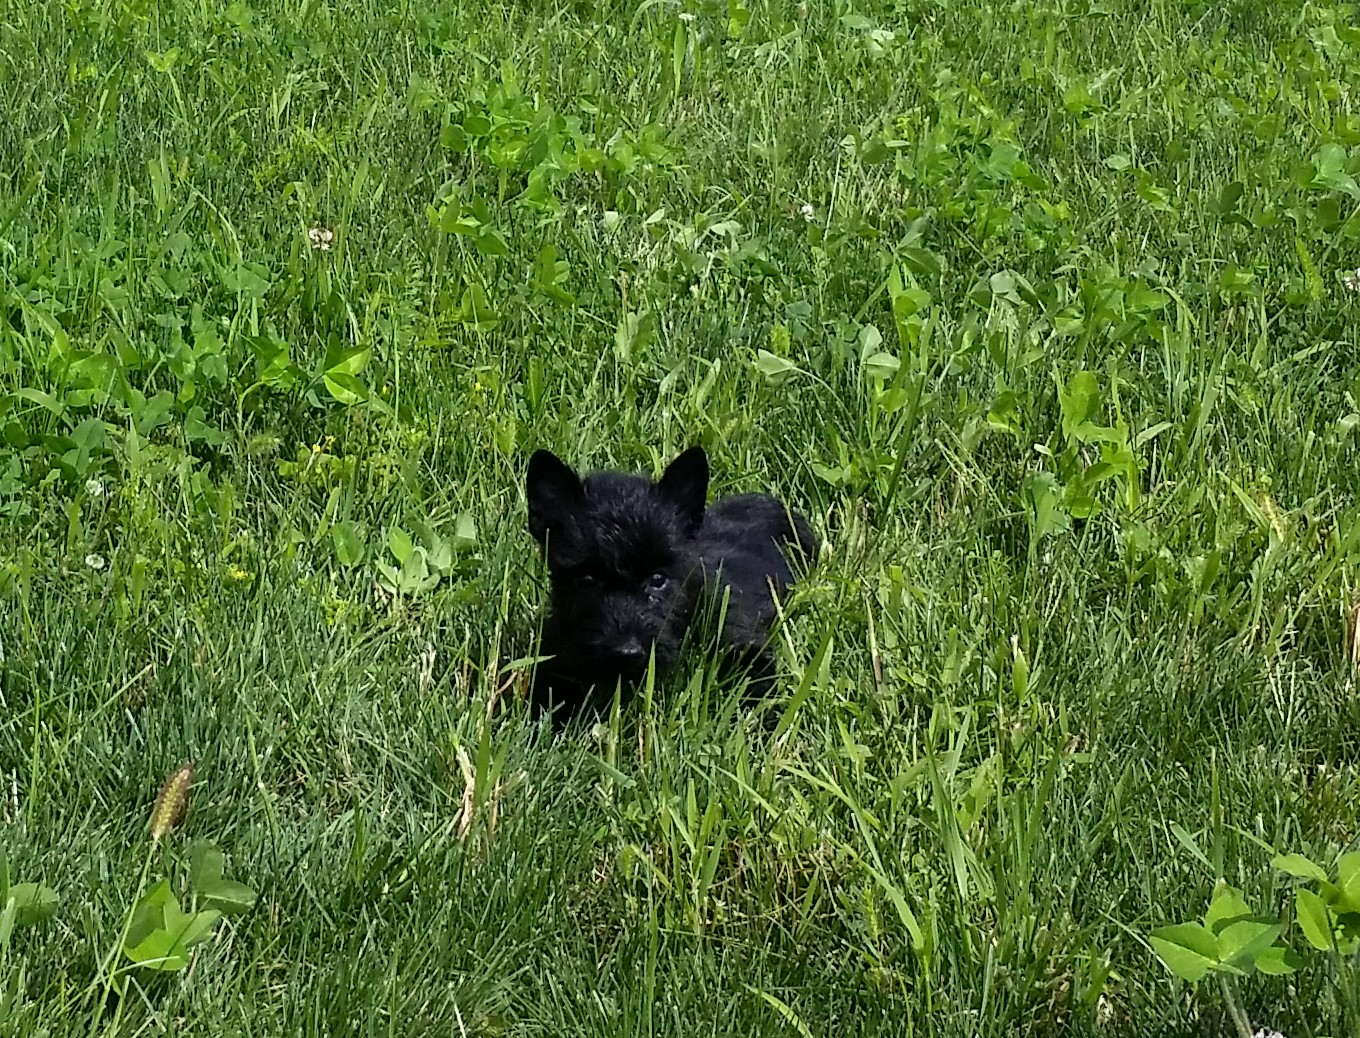 Moira's Puppies - This is Little Man in Grass